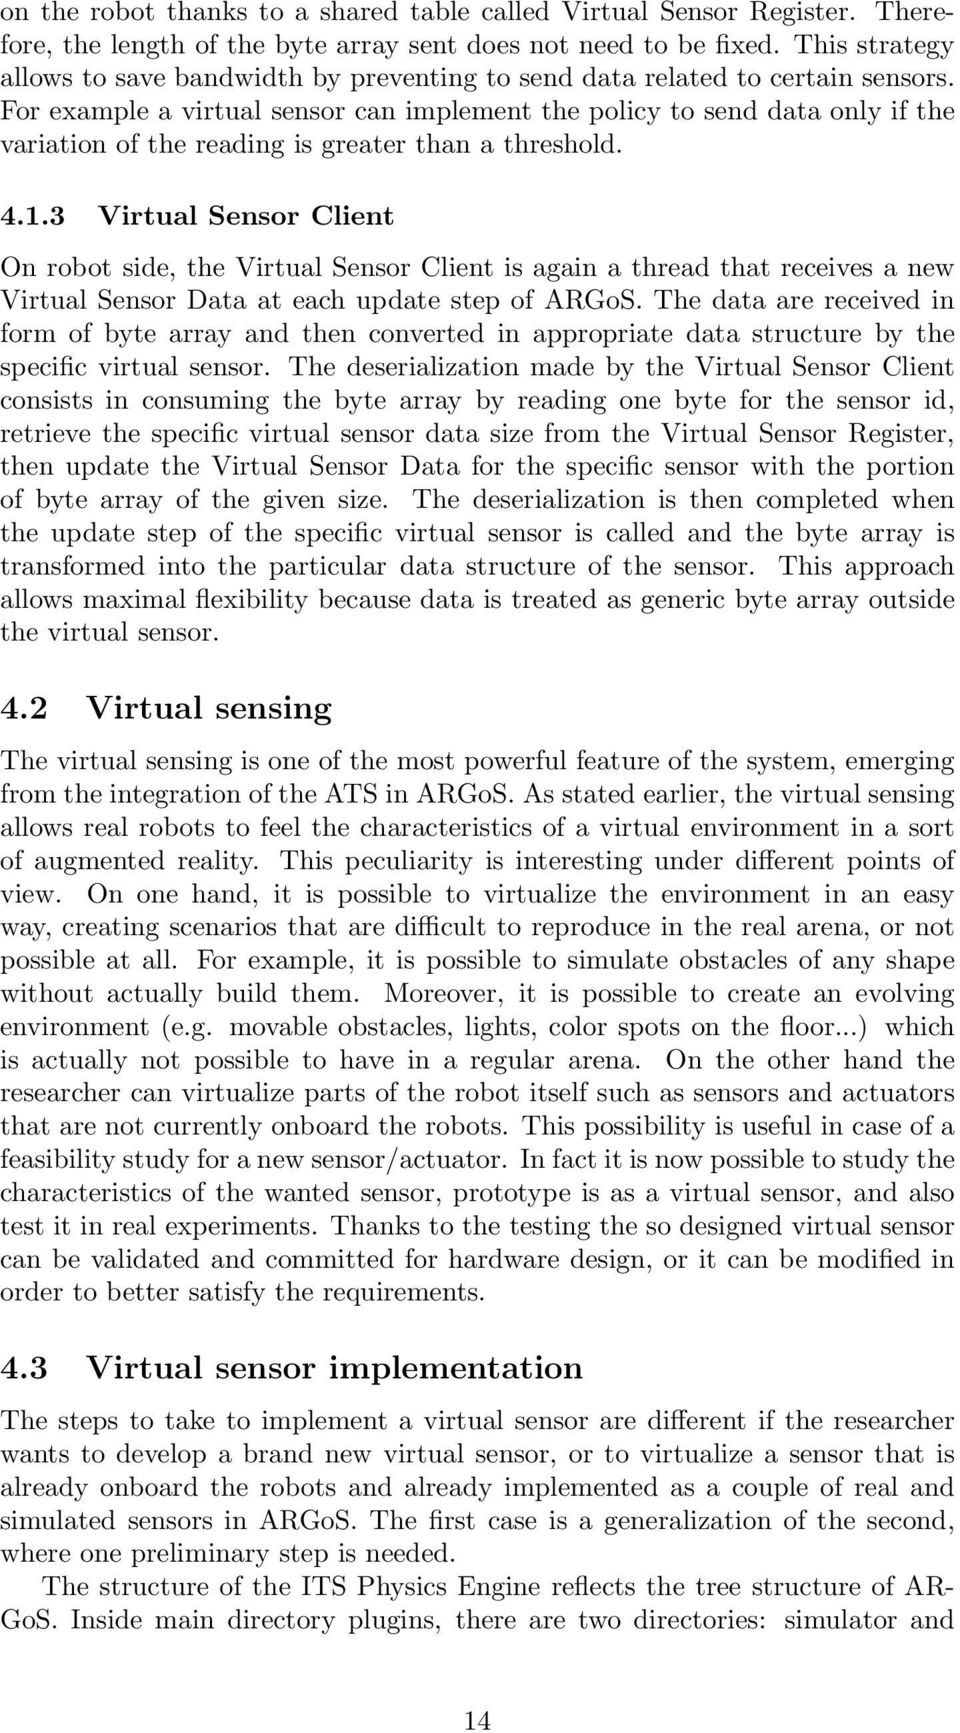 For example a virtual sensor can implement the policy to send data only if the variation of the reading is greater than a threshold. 4.1.